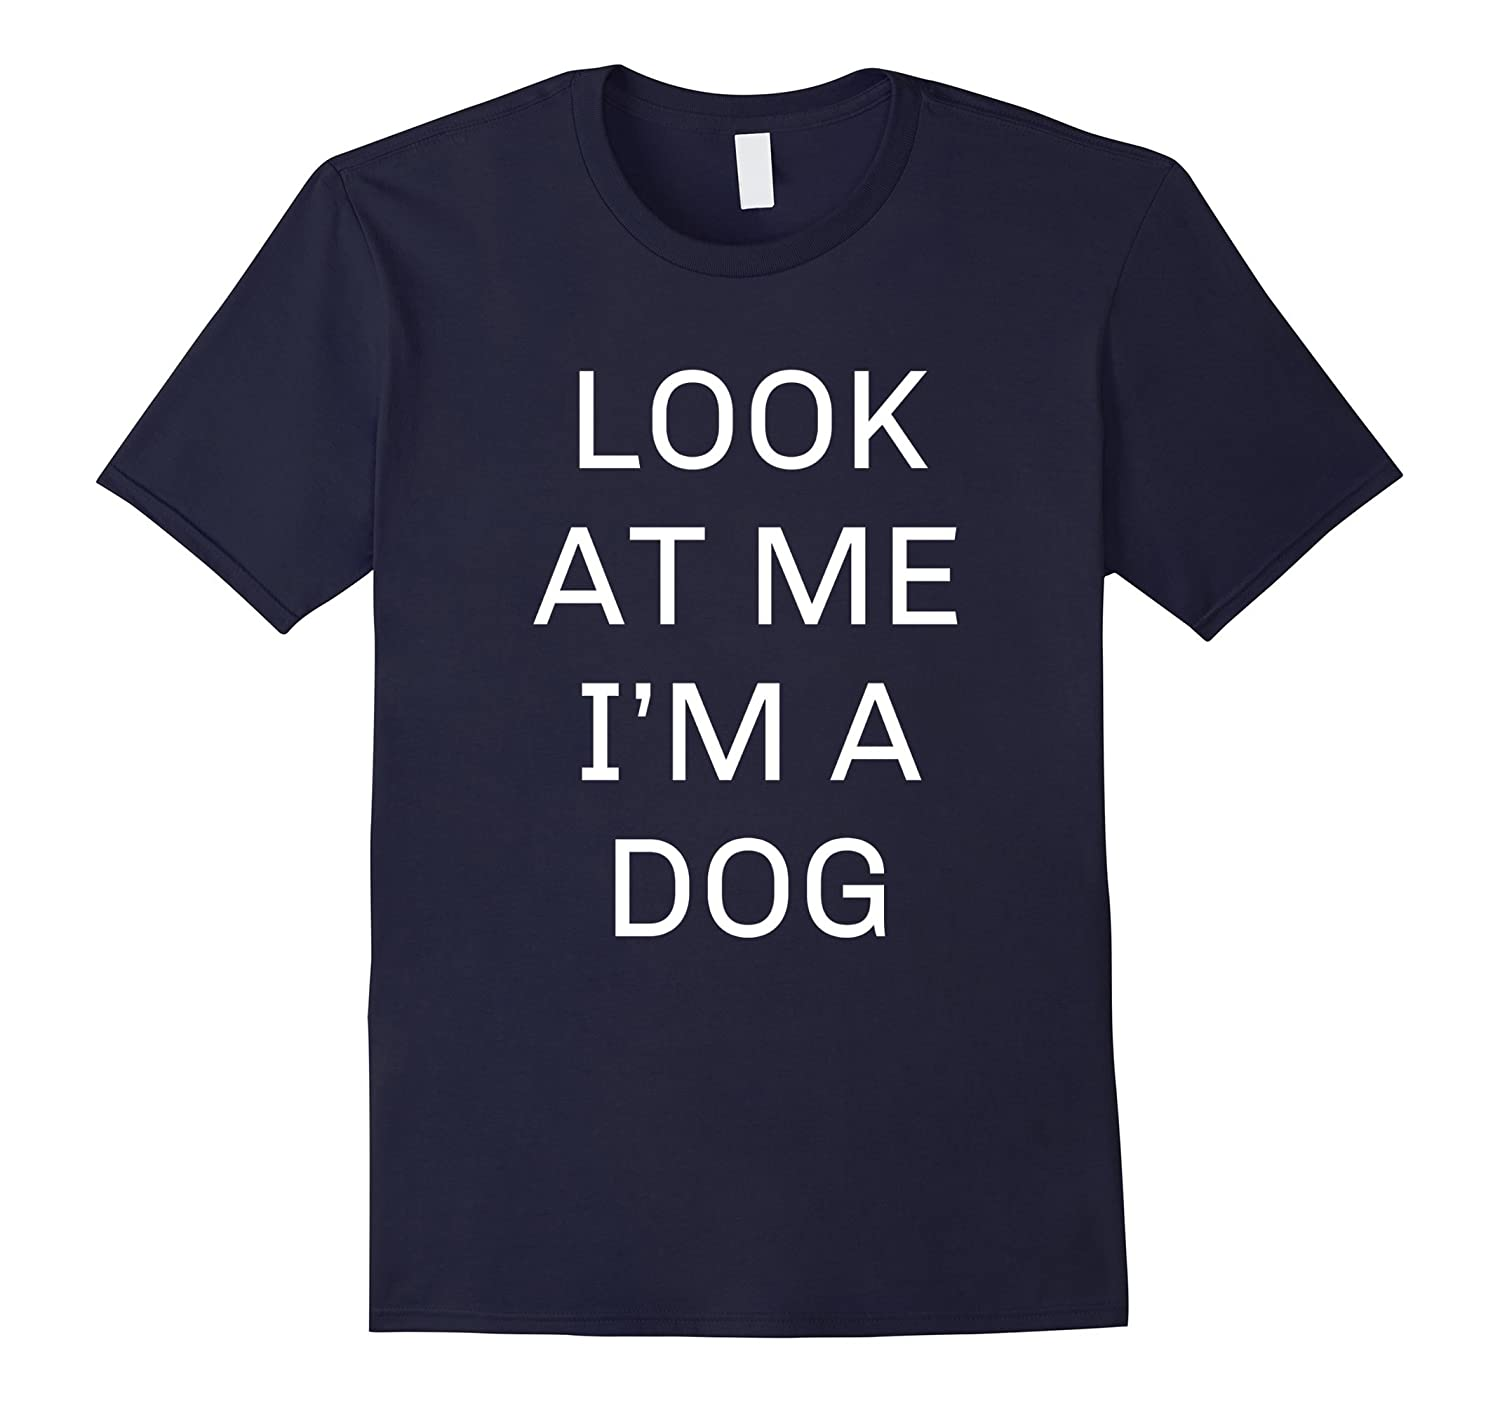 Look At Me I'm a Dog Halloween Costume Shirt Women Men Kids-FL